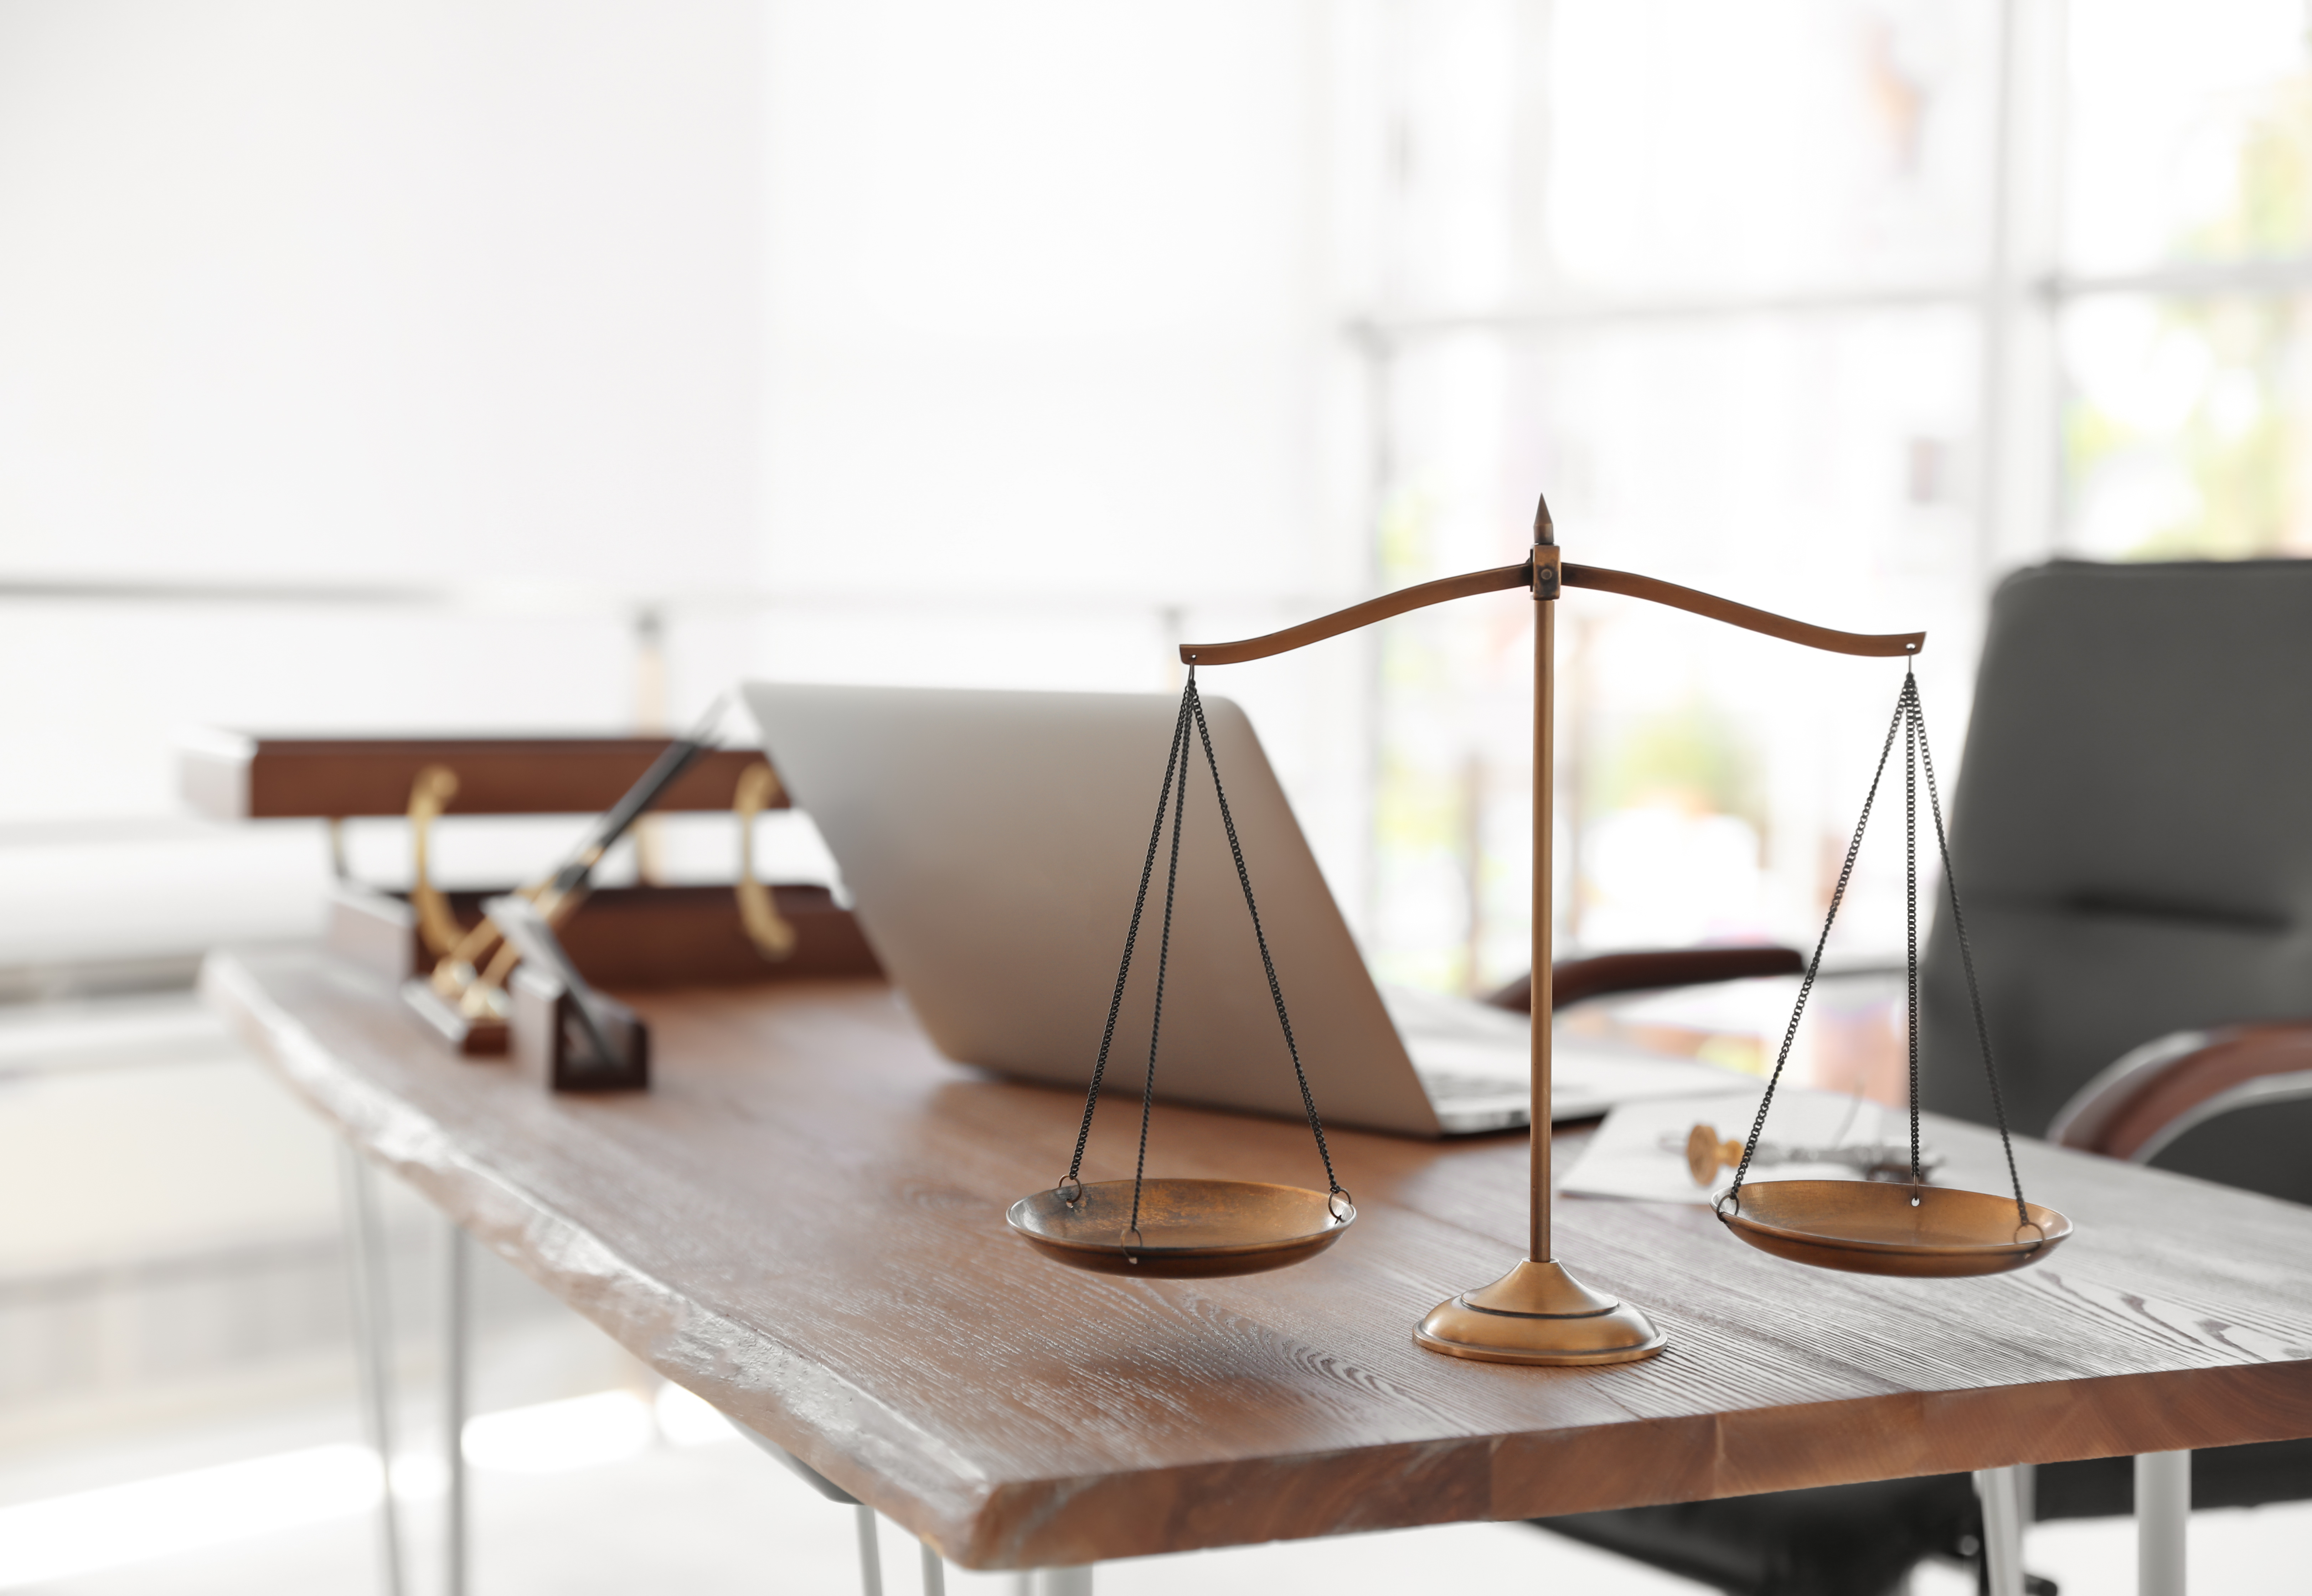 Private Placement Due Diligence: Your Guide to 506(b) vs. 506(c)